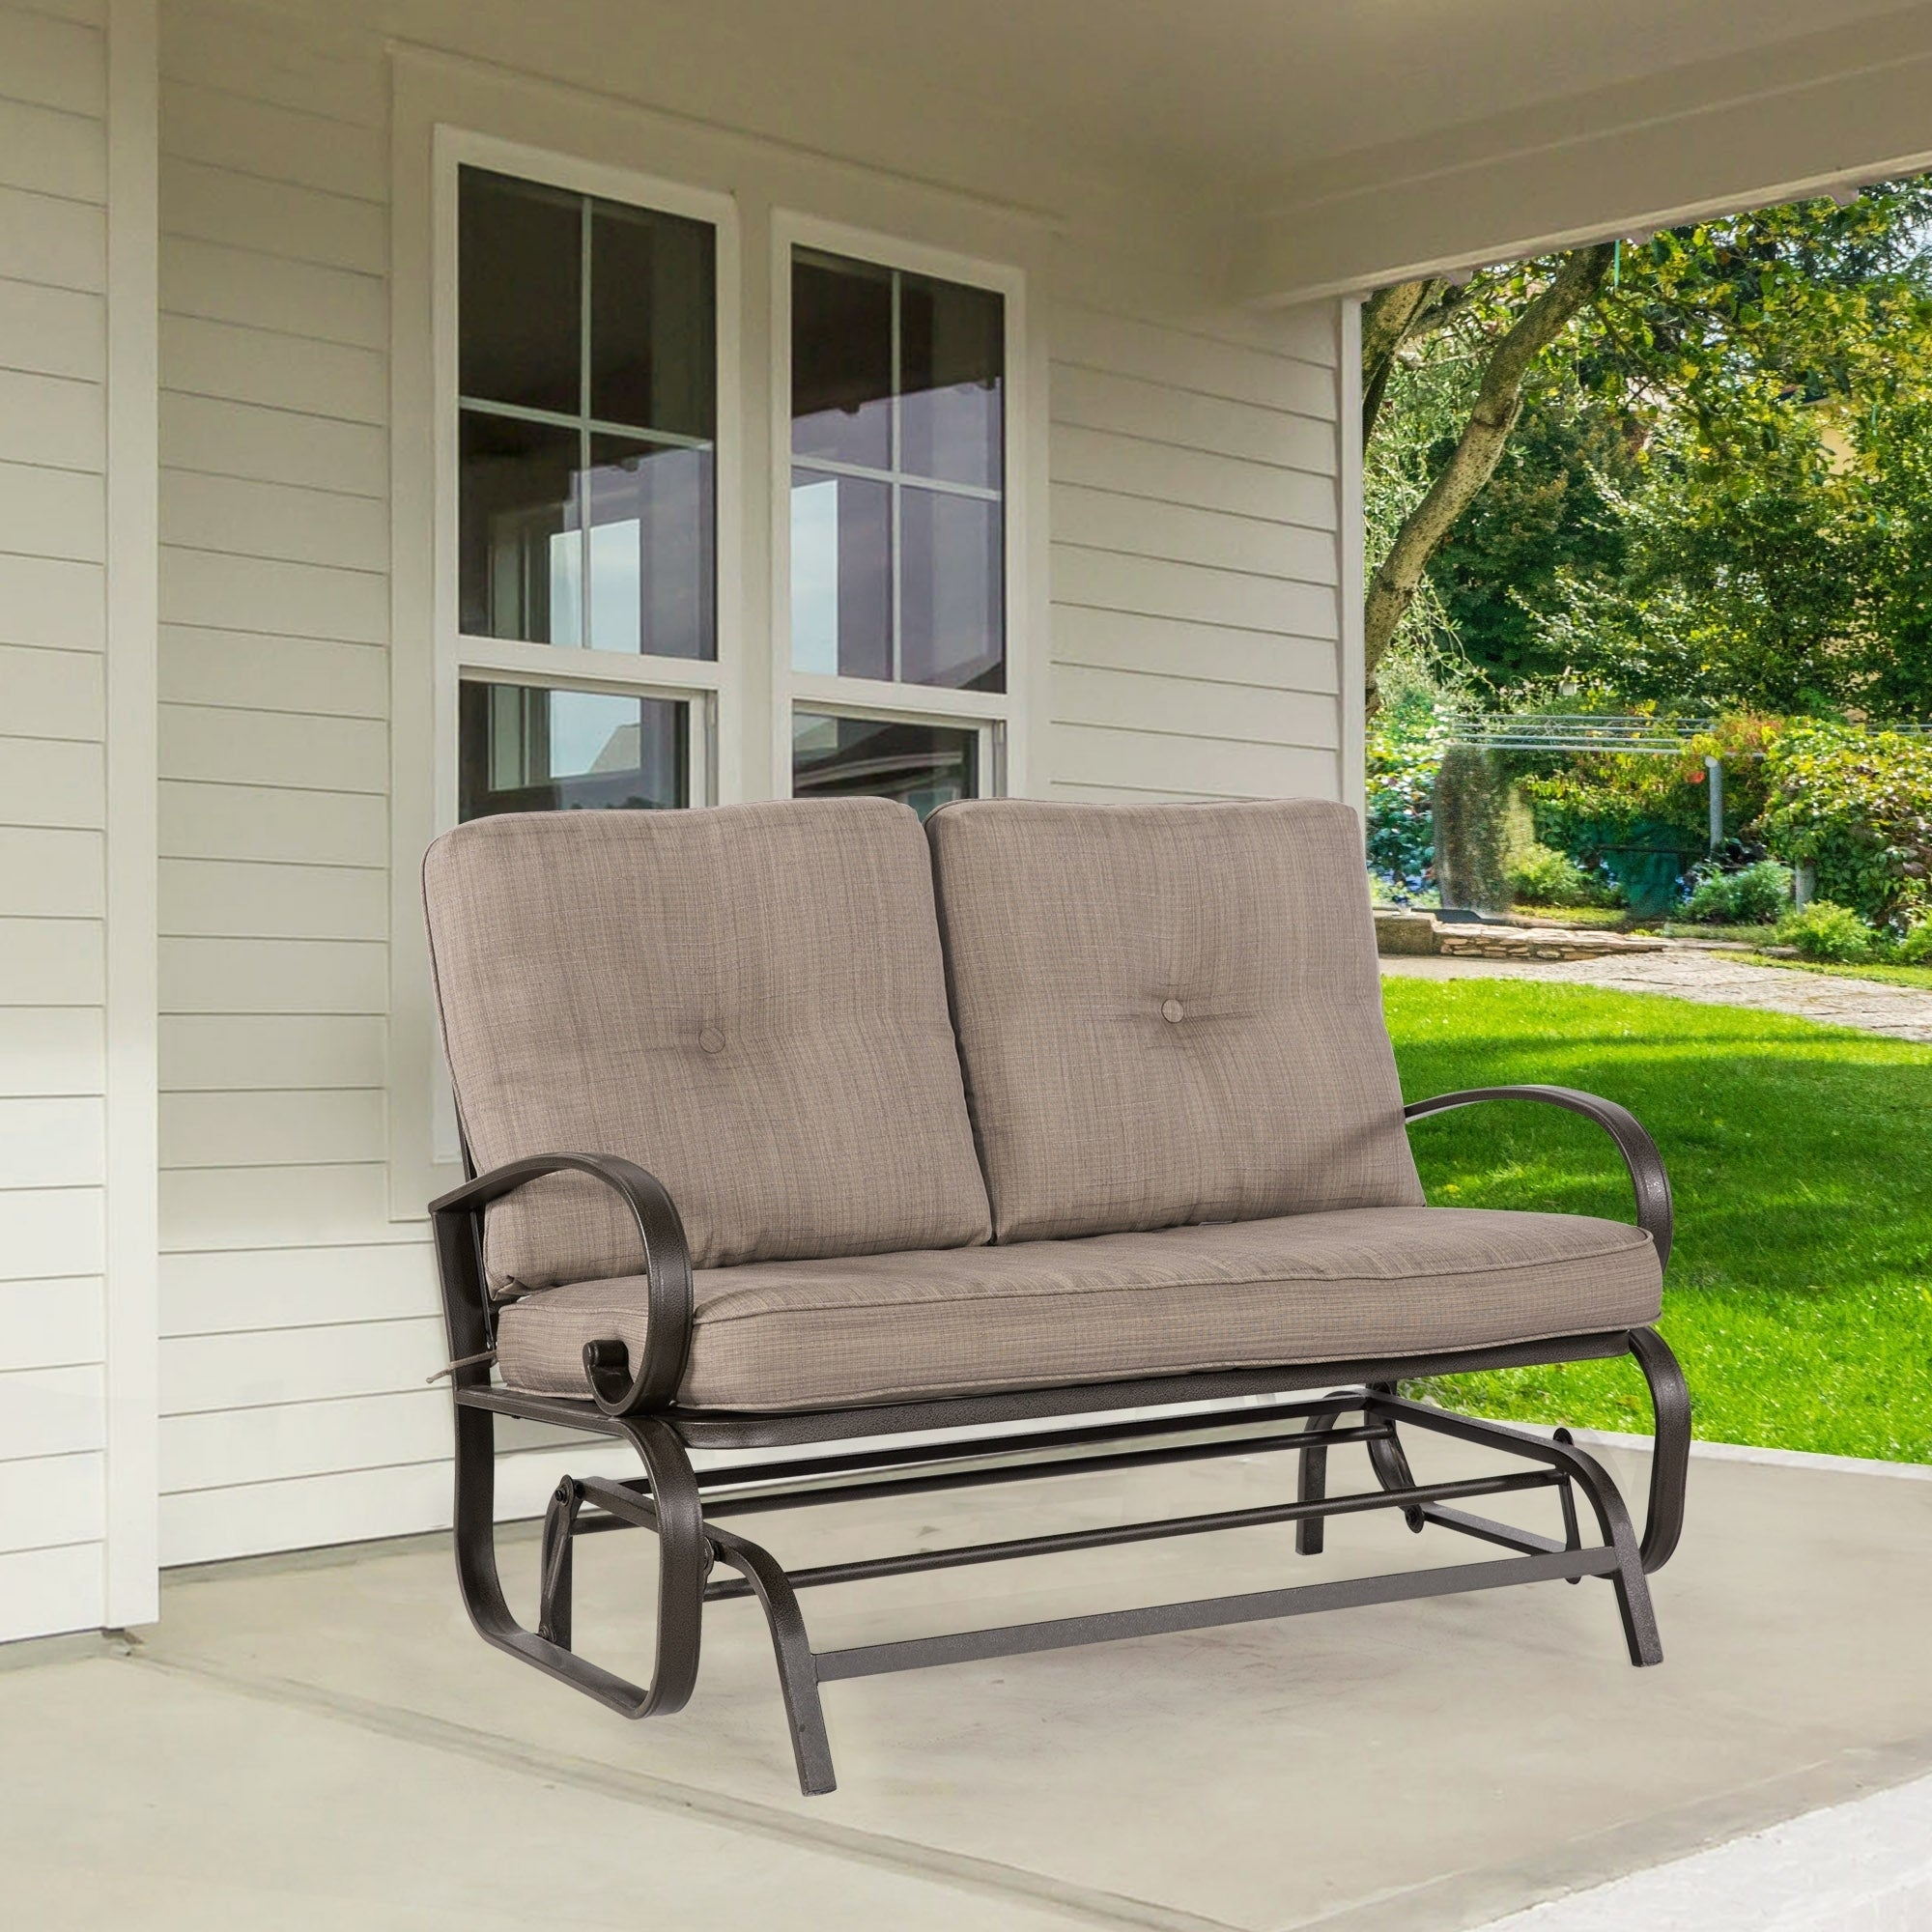 2 Person Loveseat Cushioned Rocking Bench Furniture Patio Swing Rocker Lounge Glider Chair Outdoor Patio, Gradient Brown Inside 2 Person Loveseat Chair Patio Porch Swings With Rocker (View 18 of 25)